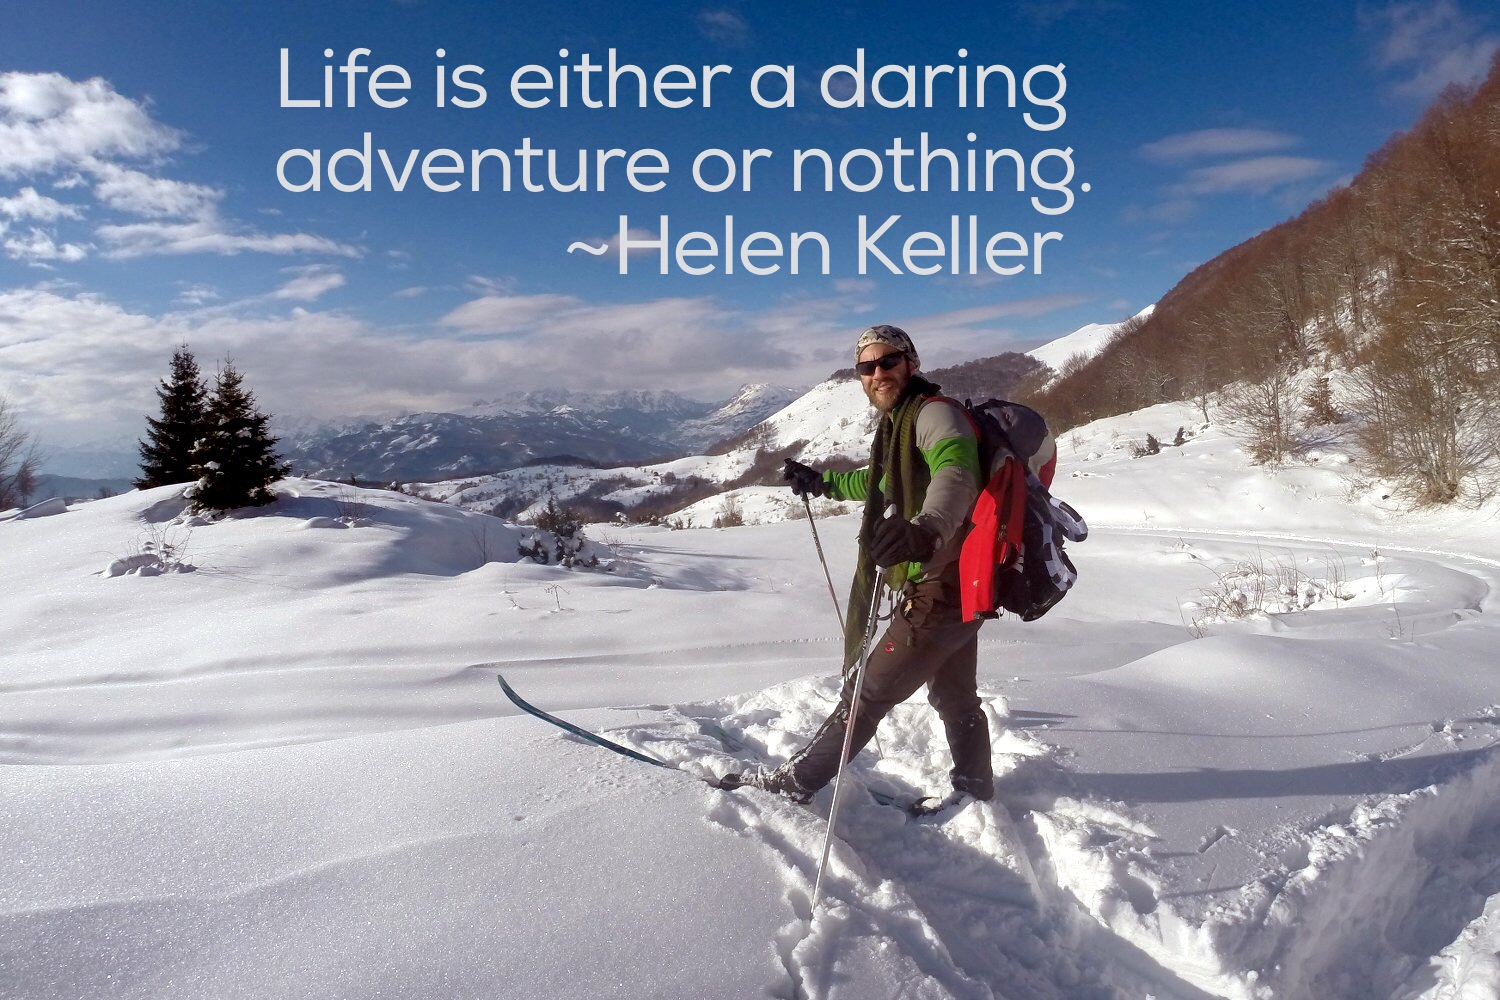 Life is either a daring adventure or nothing. -Helen Keller